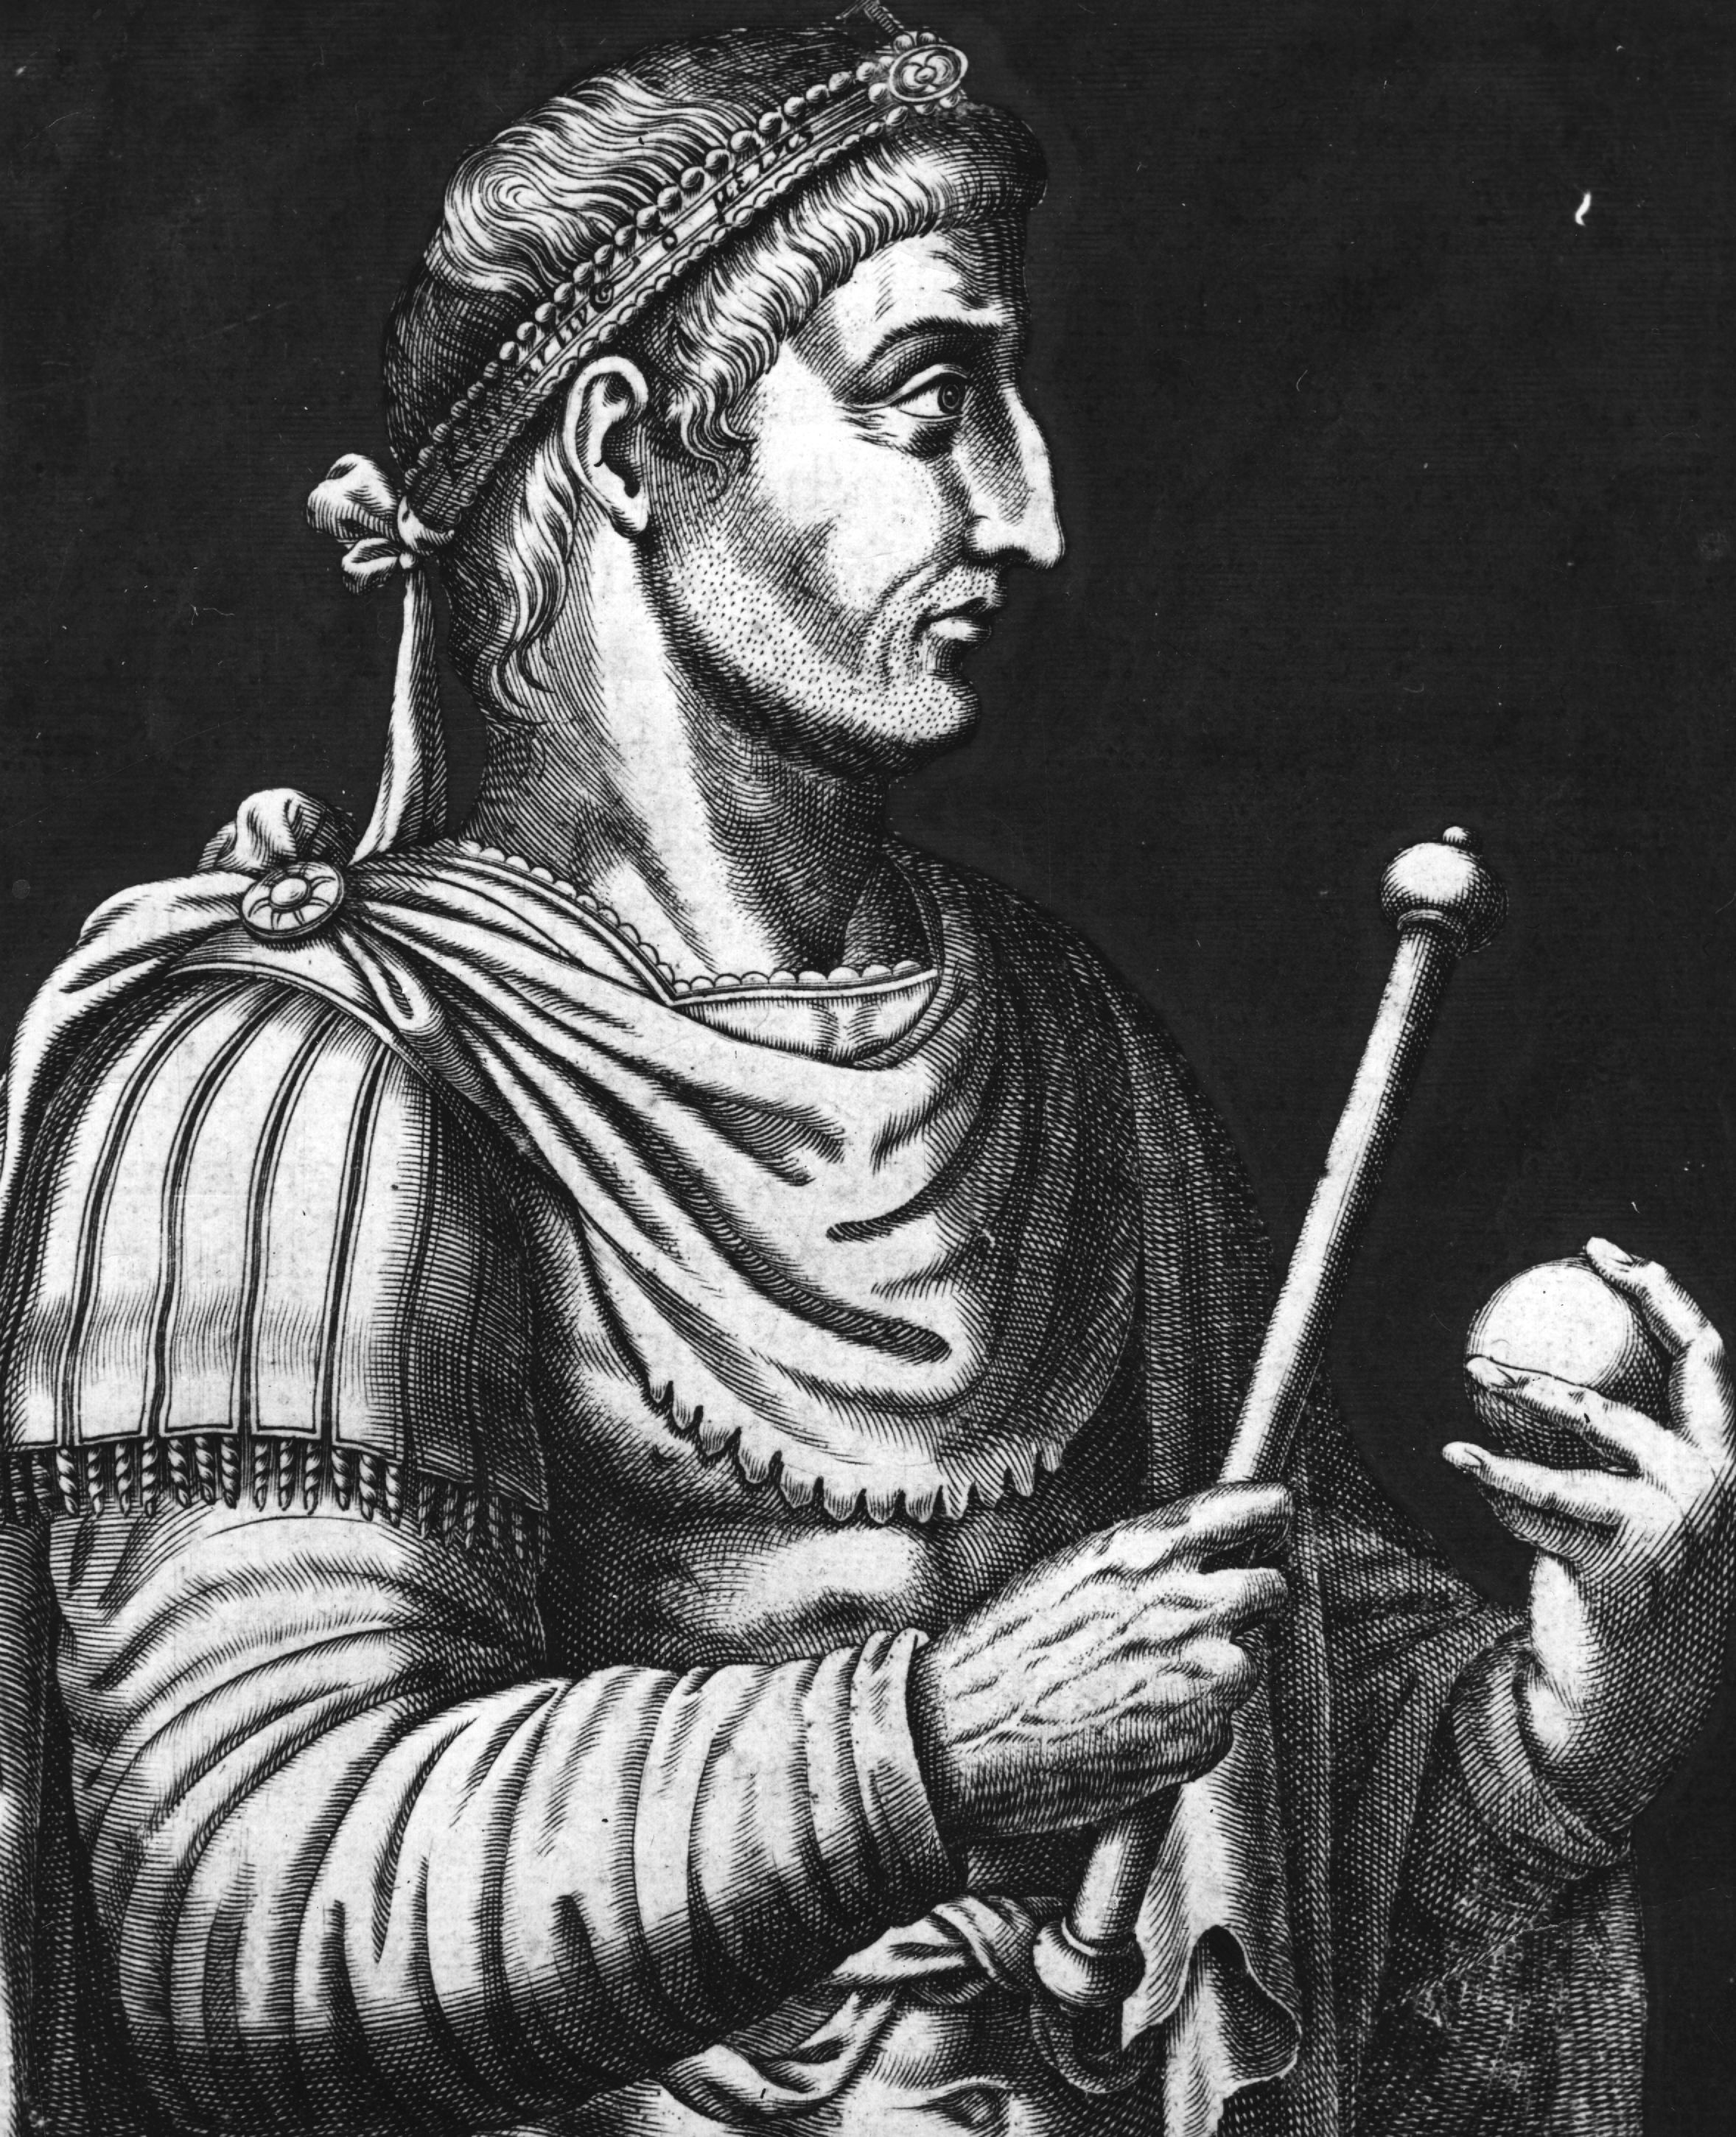 a short biography of constantine the great the 57th emperor of the roman empire Obituaries for the last 7 days on your life moments.